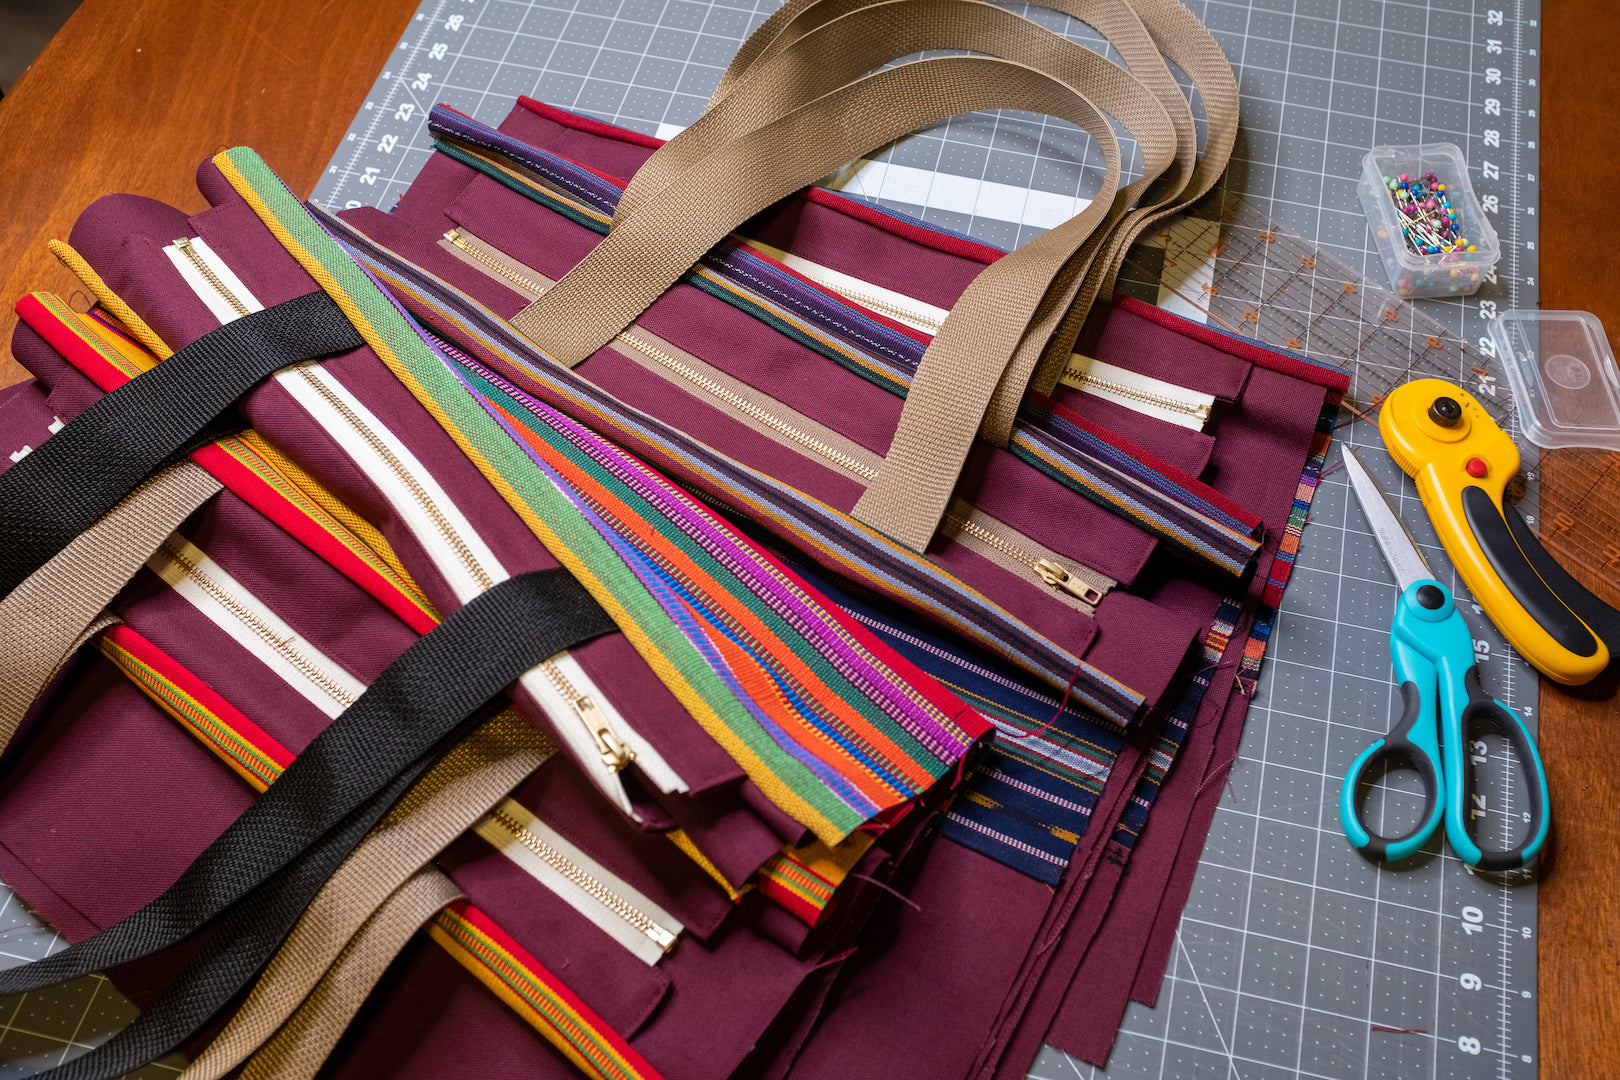 Starting to sew the tote bags.